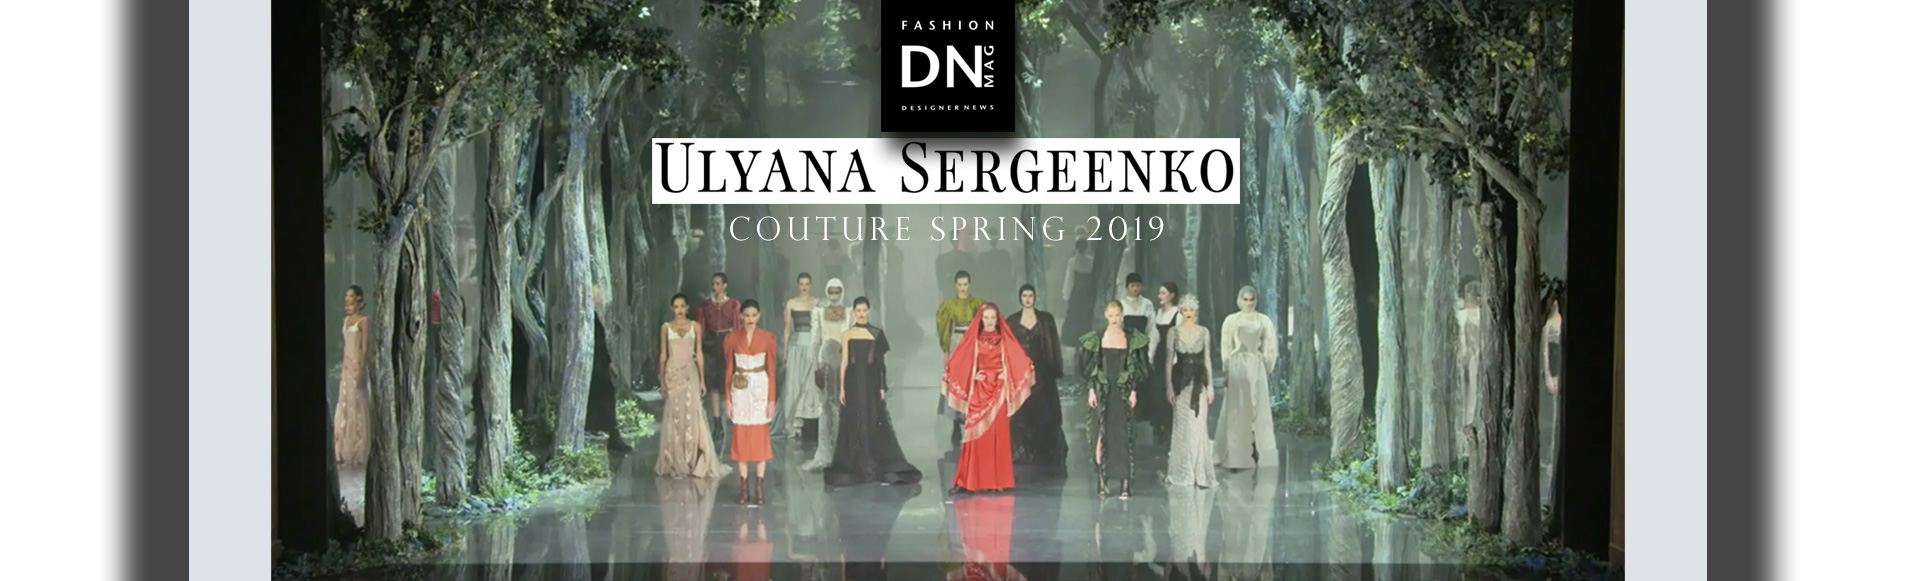 DN-MAG-ULYANA-SERGEENKO-COUTURE-SS19-COLLECTION